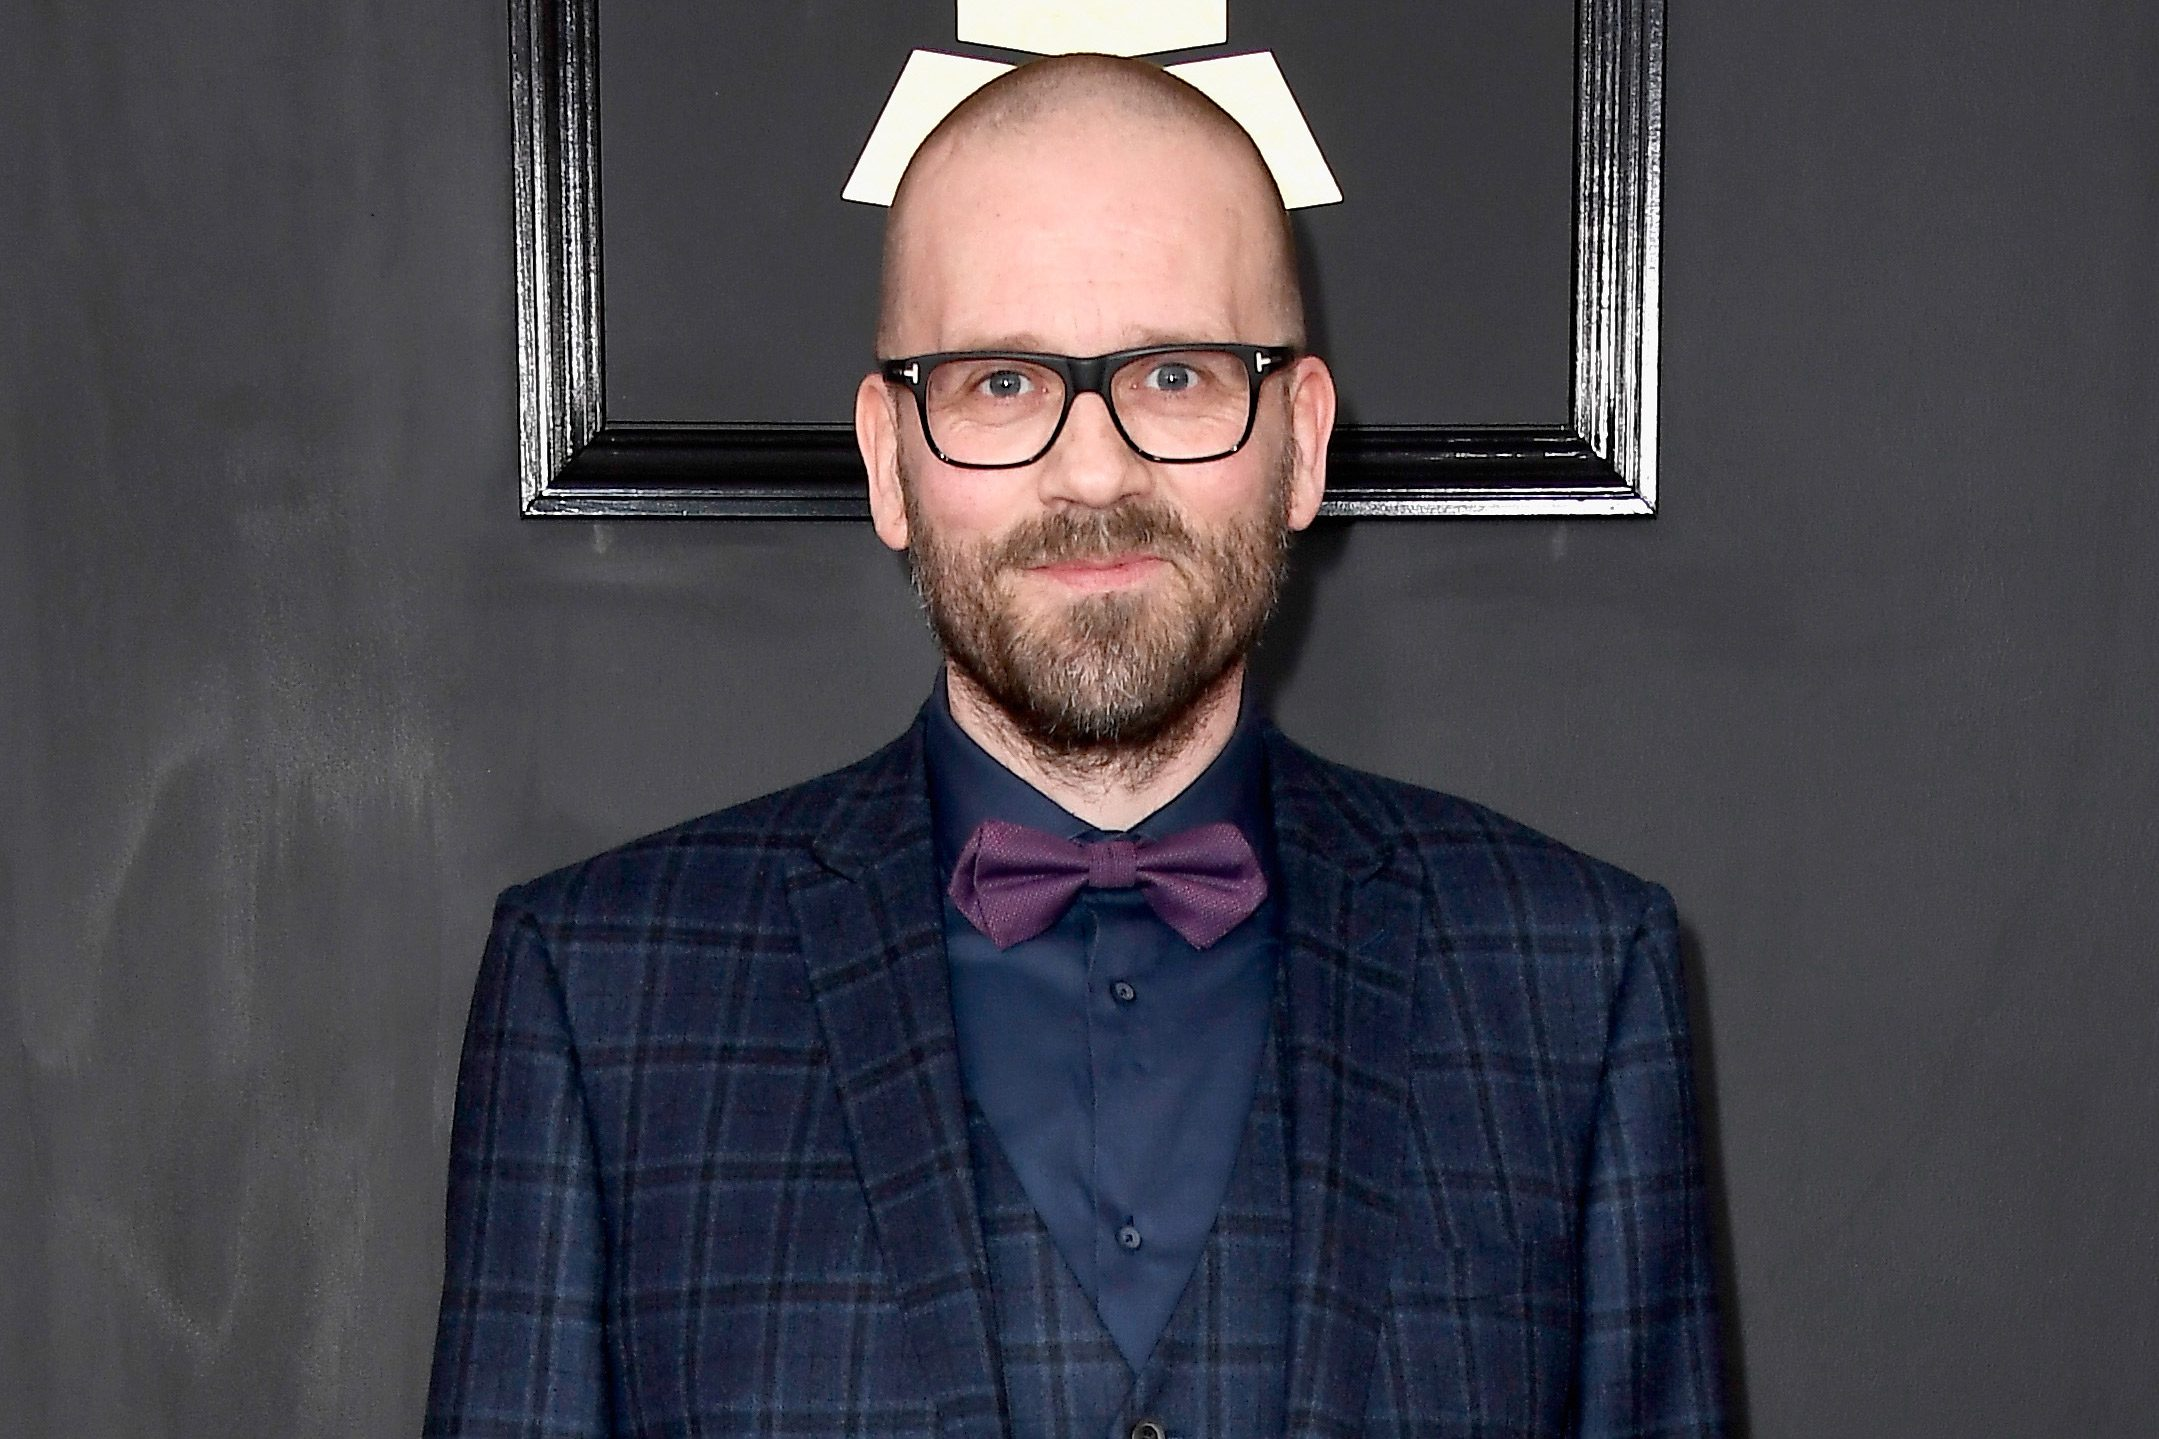 Audio engineer Morten Lindberg attends The 59th GRAMMY Awards at STAPLES Center on February 12, 2017 in Los Angeles, California.